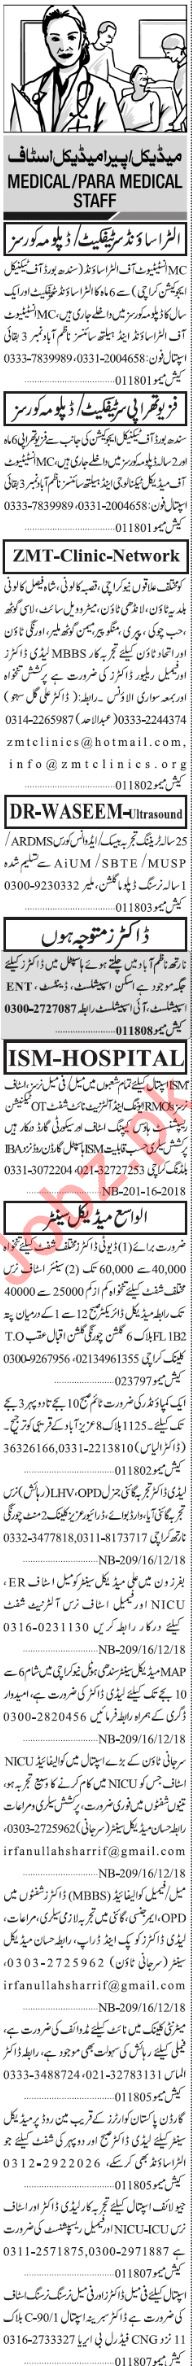 Jang Sunday Classified Ads 16th Dec 2018 Paramedical Staff